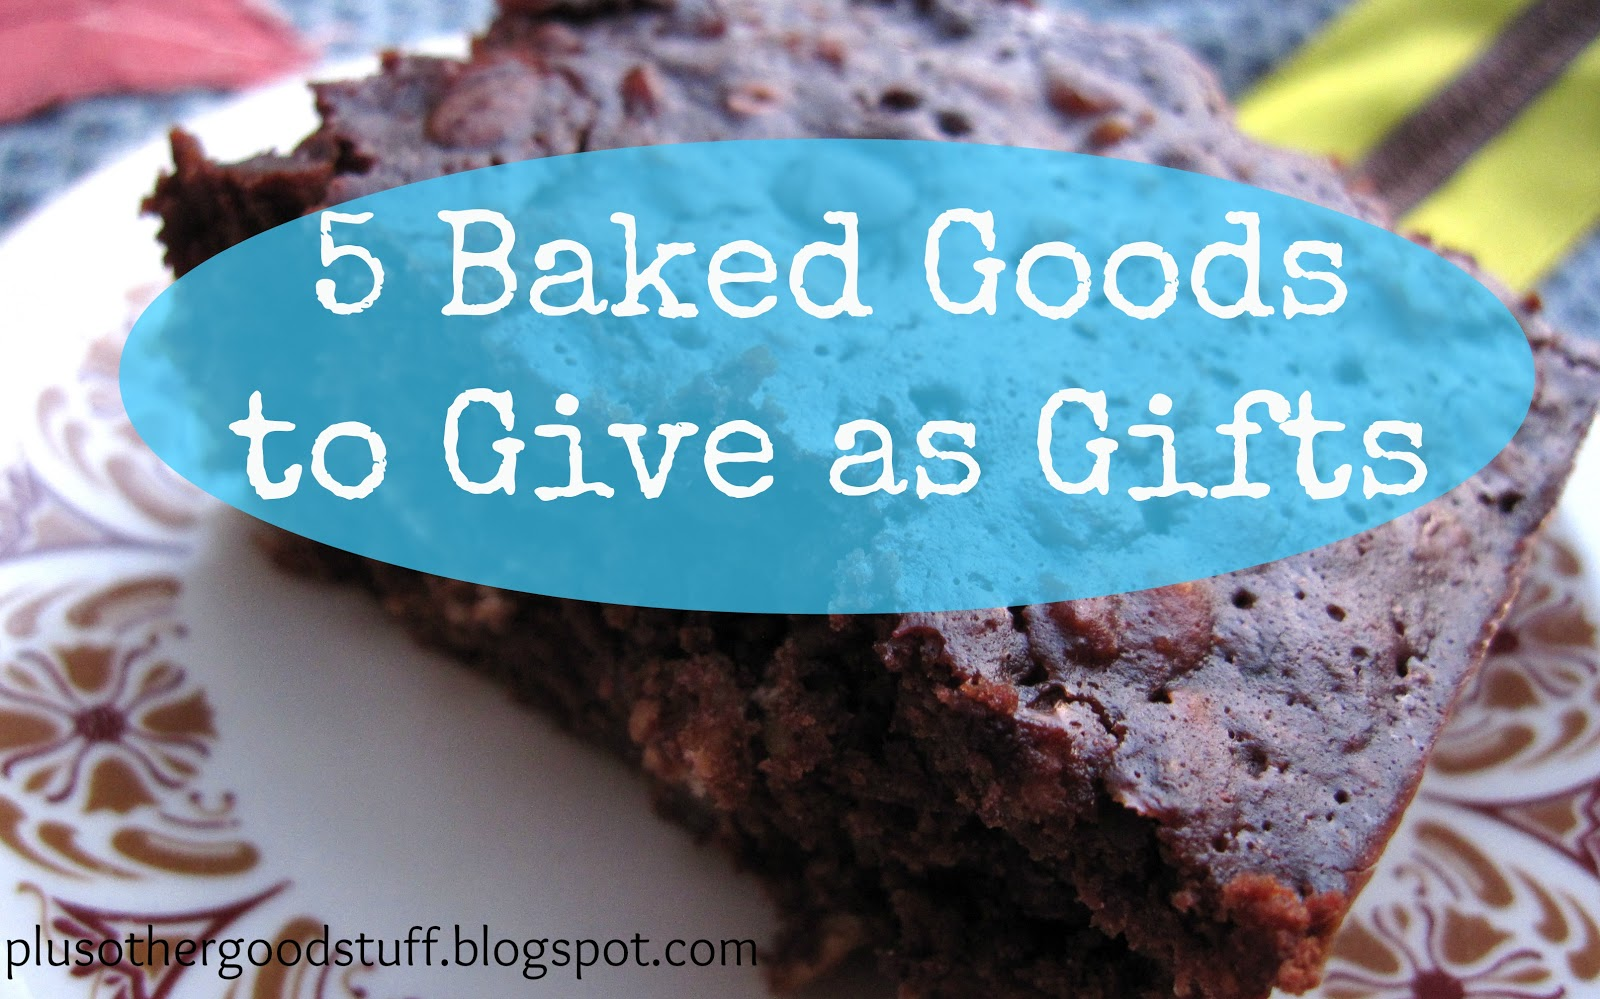 Plus Other Good Stuff: Five Baked Goods To Give As Gifts